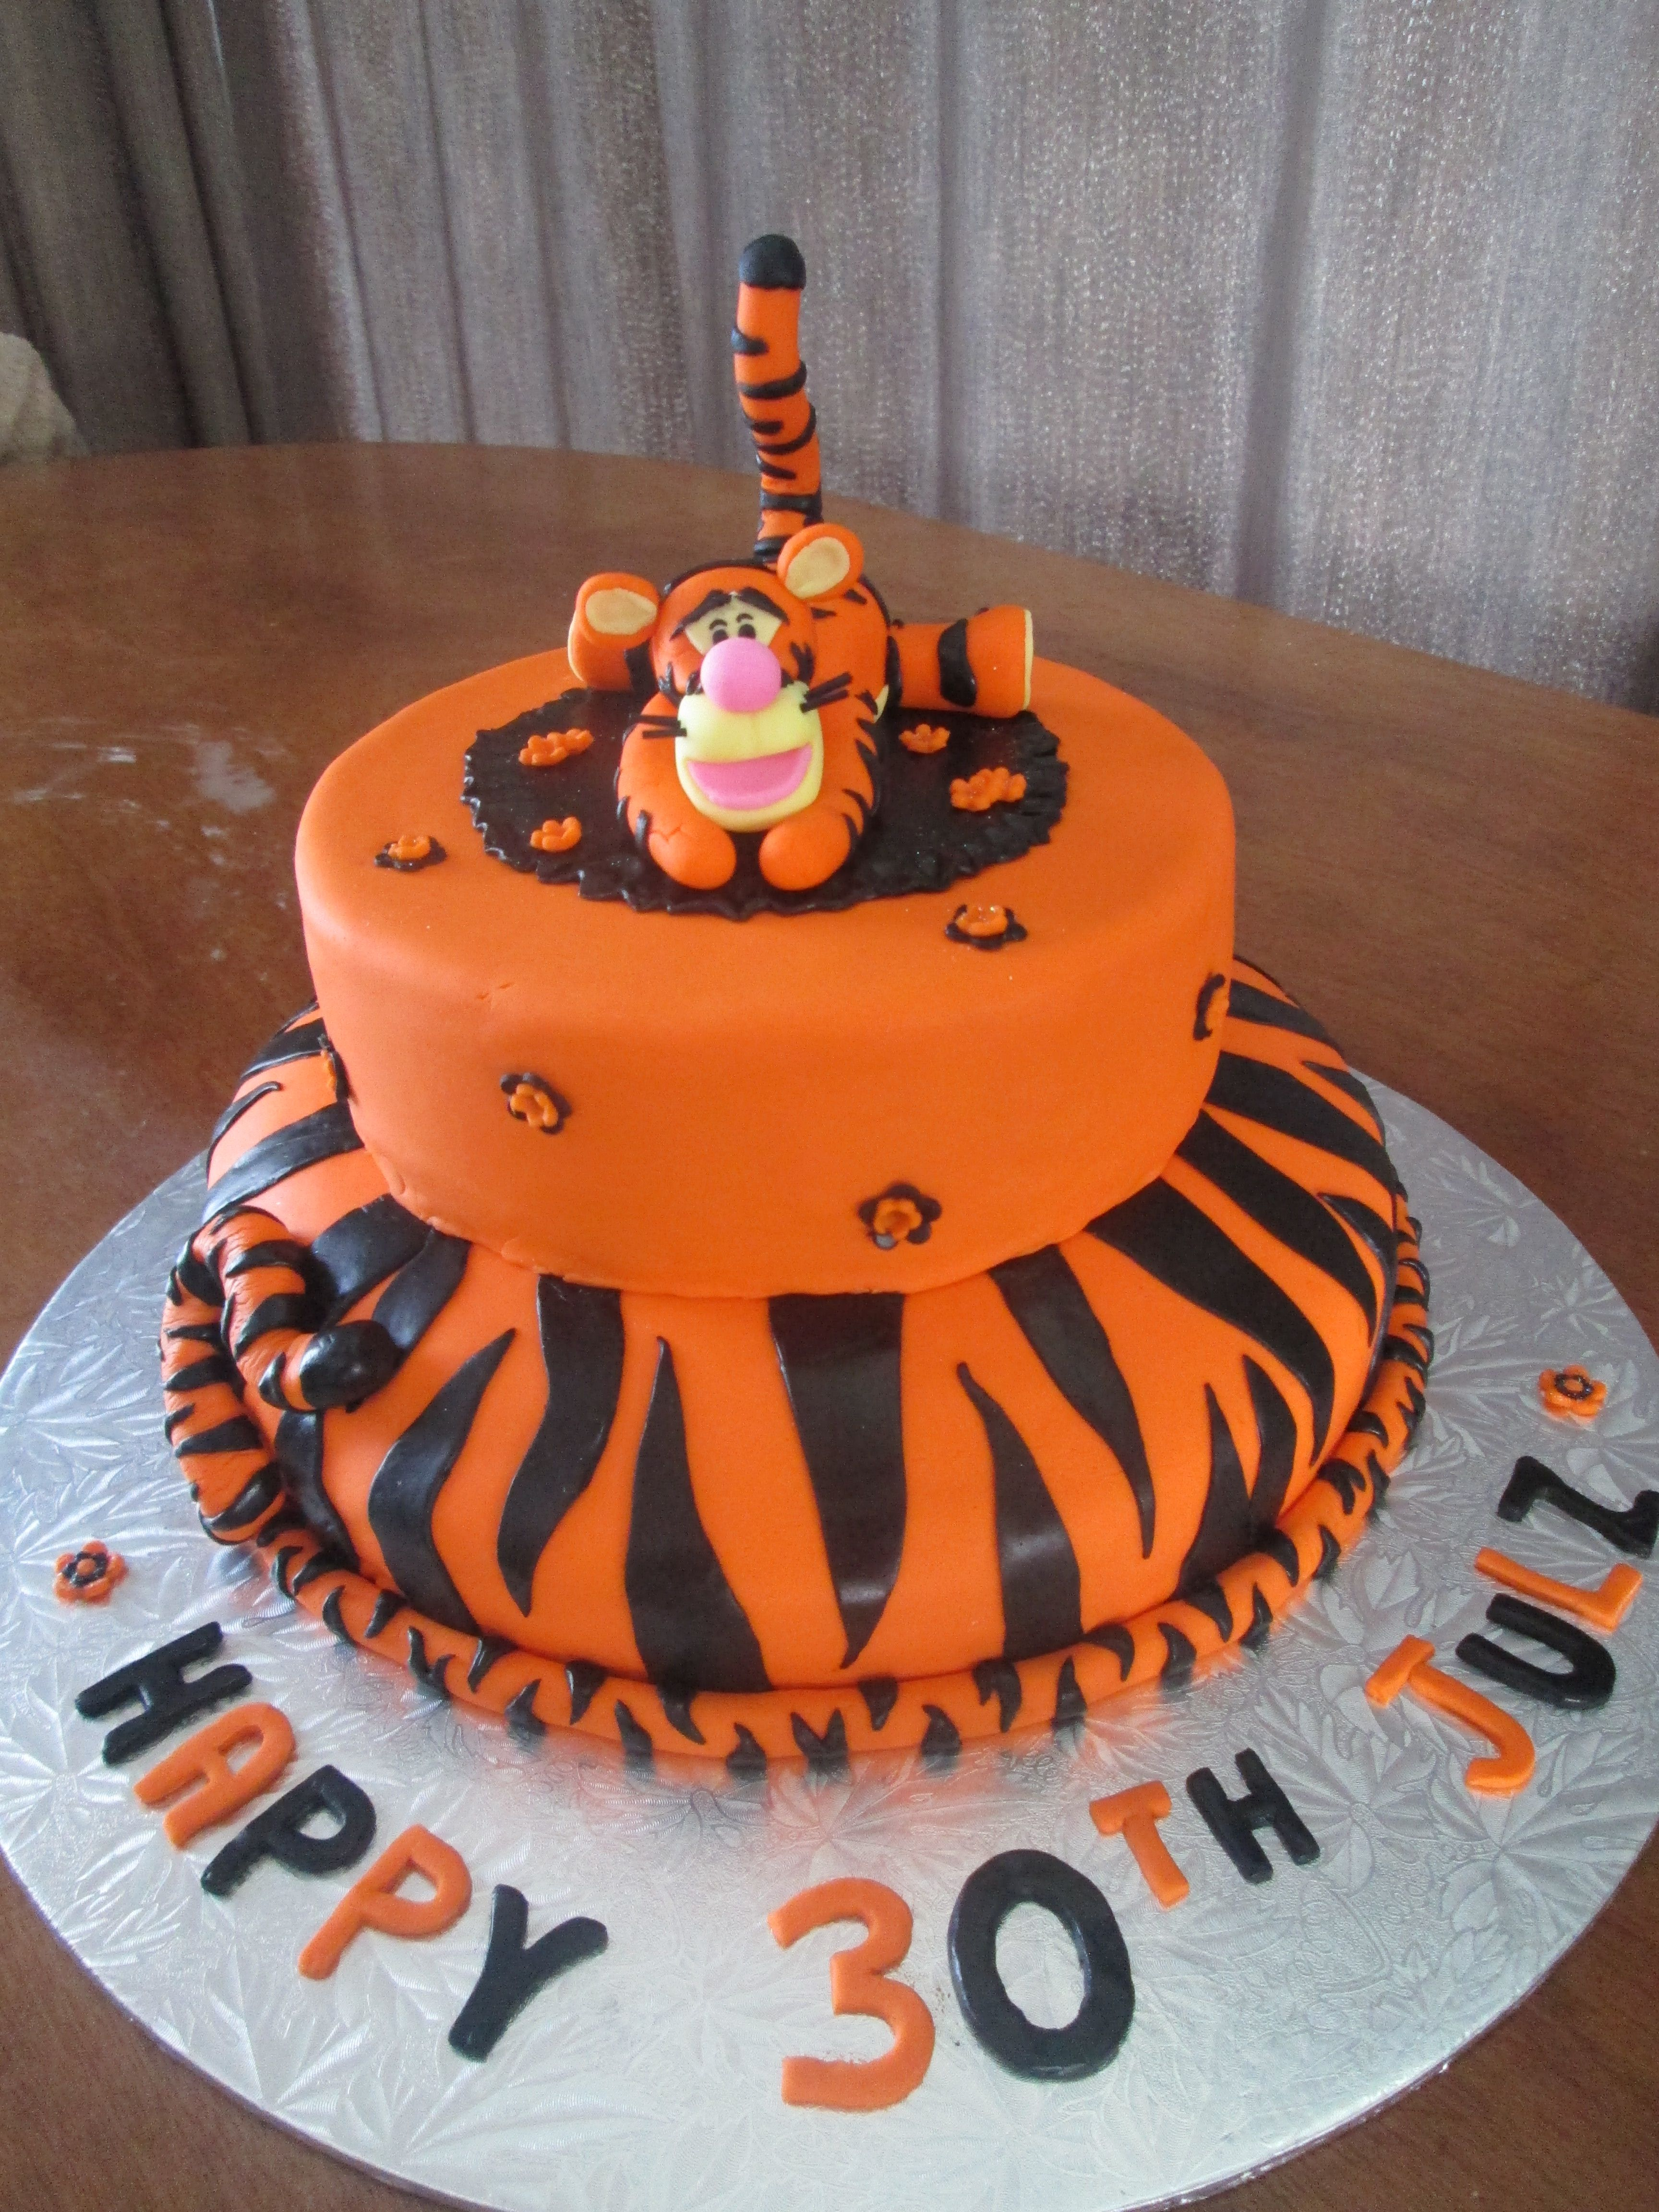 Tigger cake made with fondant for a 30th birthday